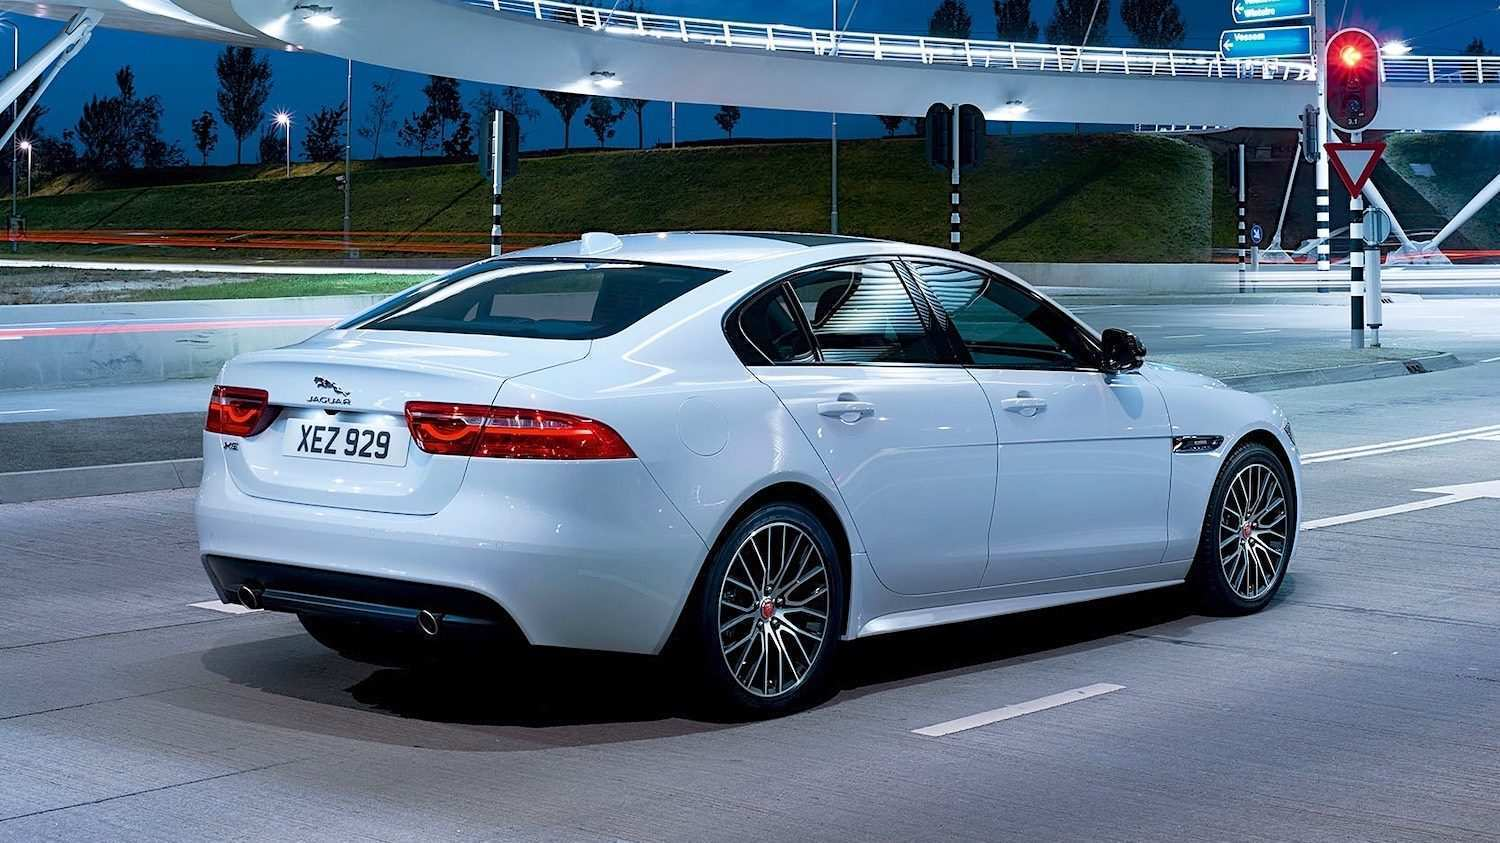 63 The Best 2019 Jaguar Xe Landmark Reviews